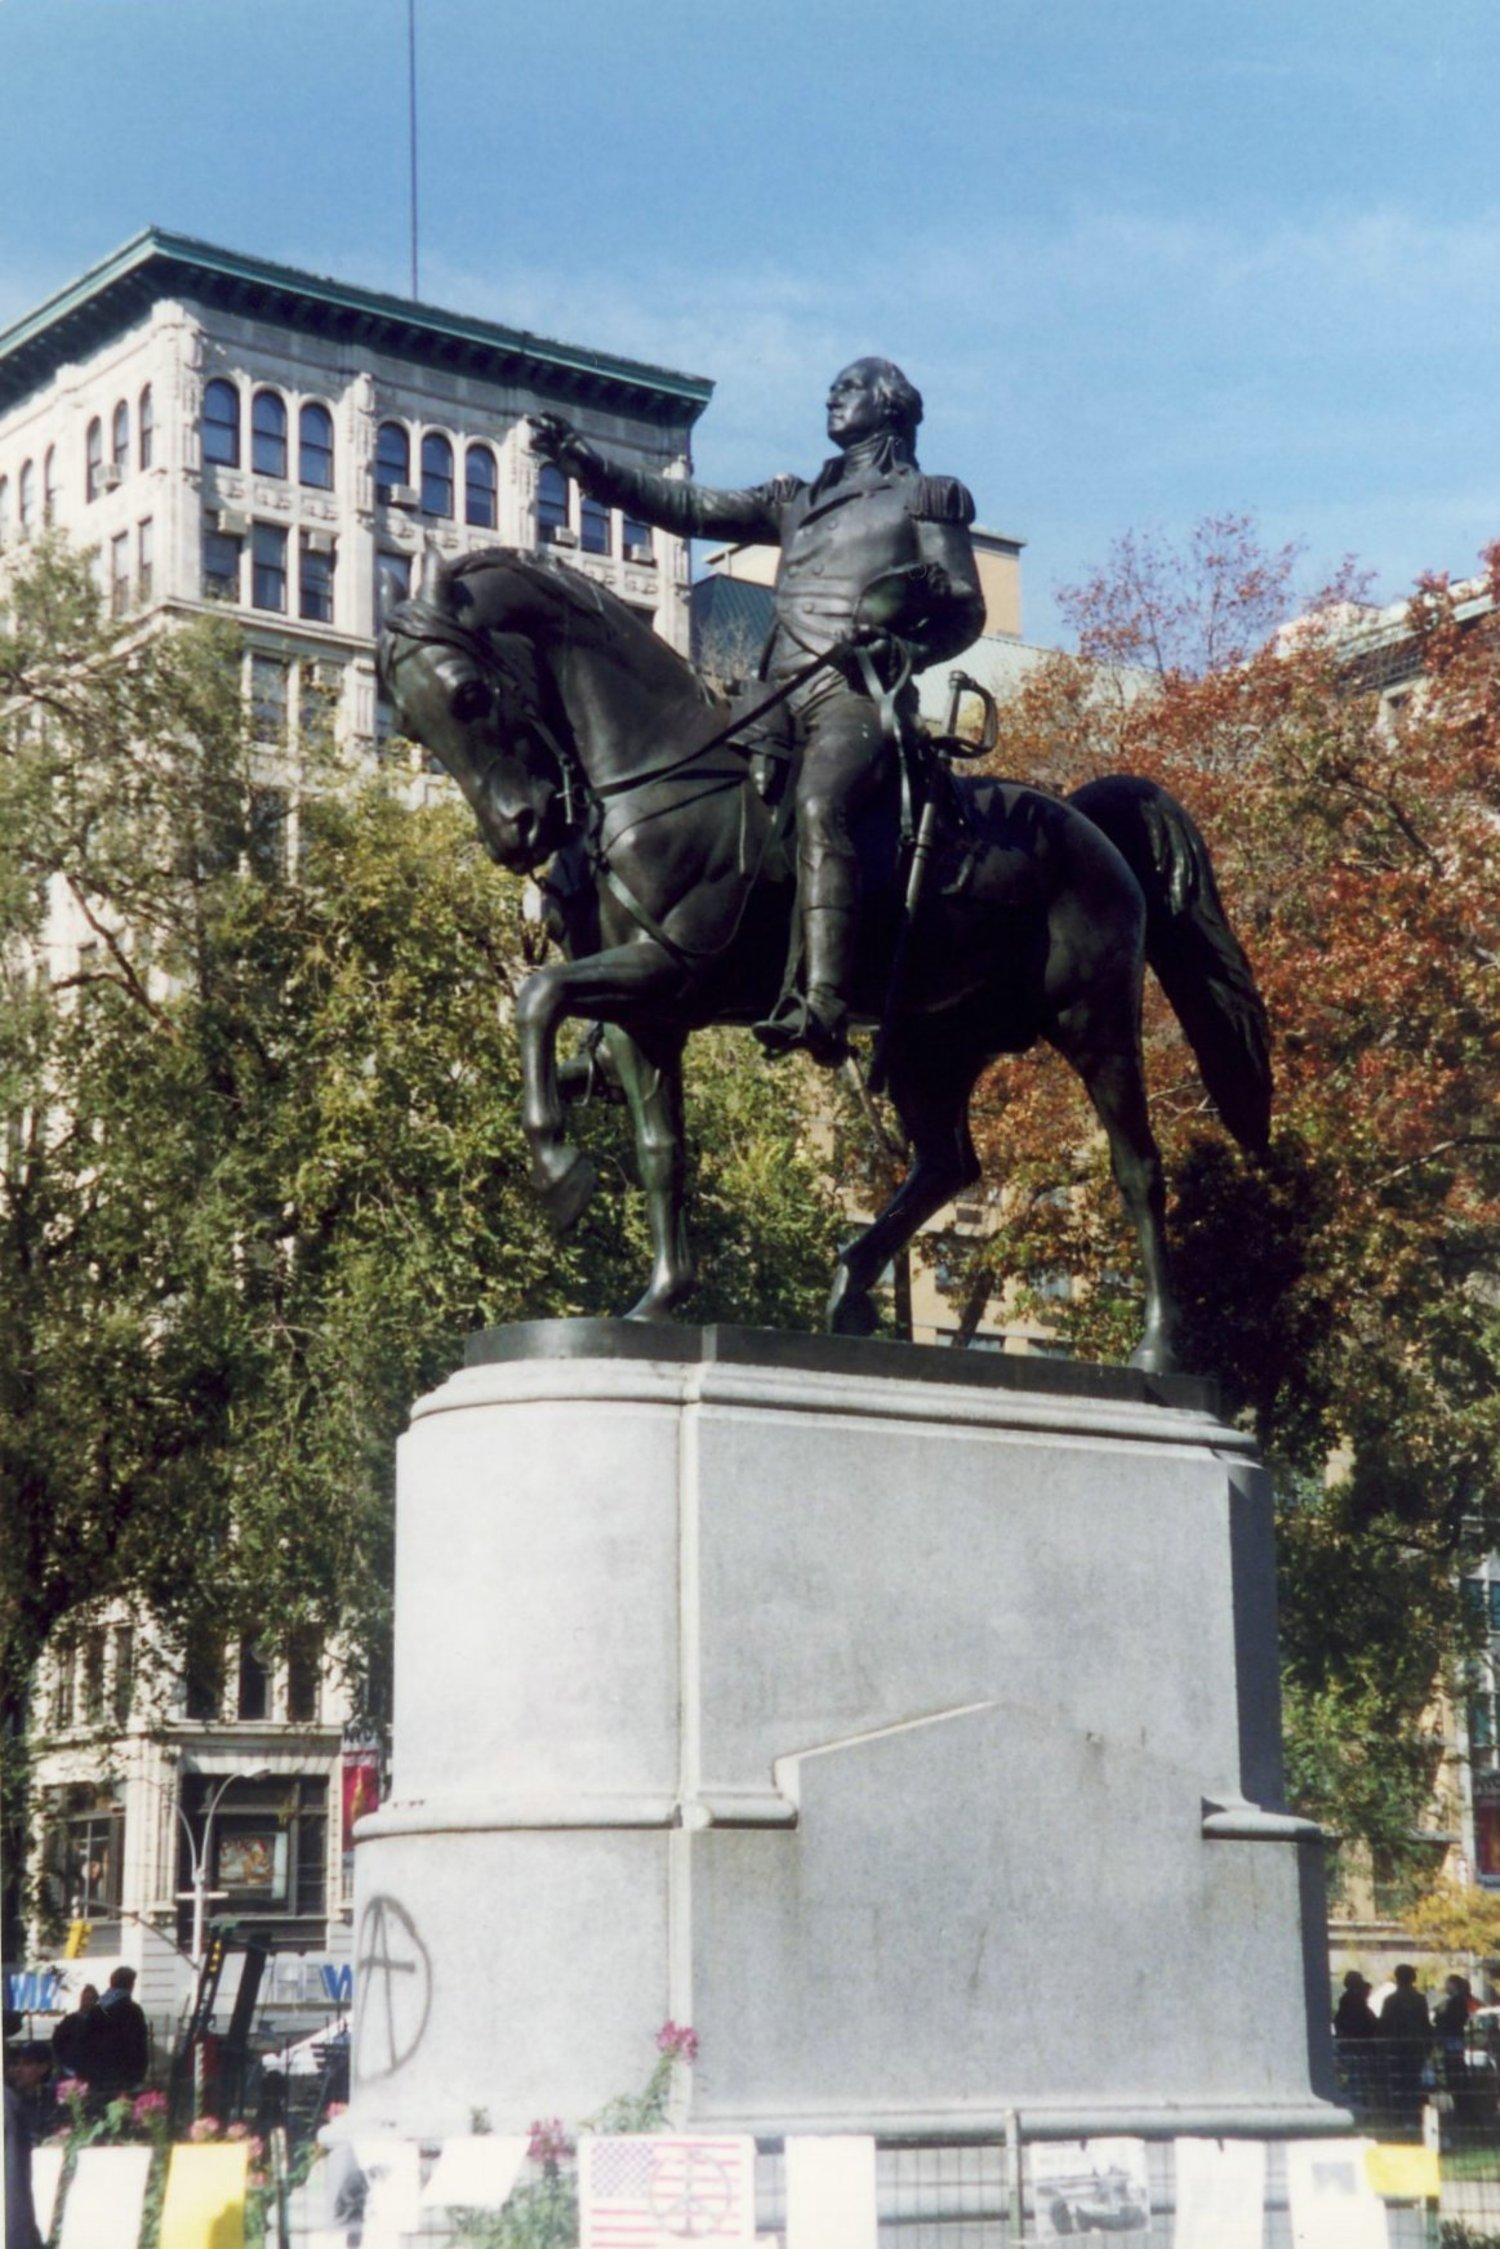 NYC: Union Square - General George Washington Statue